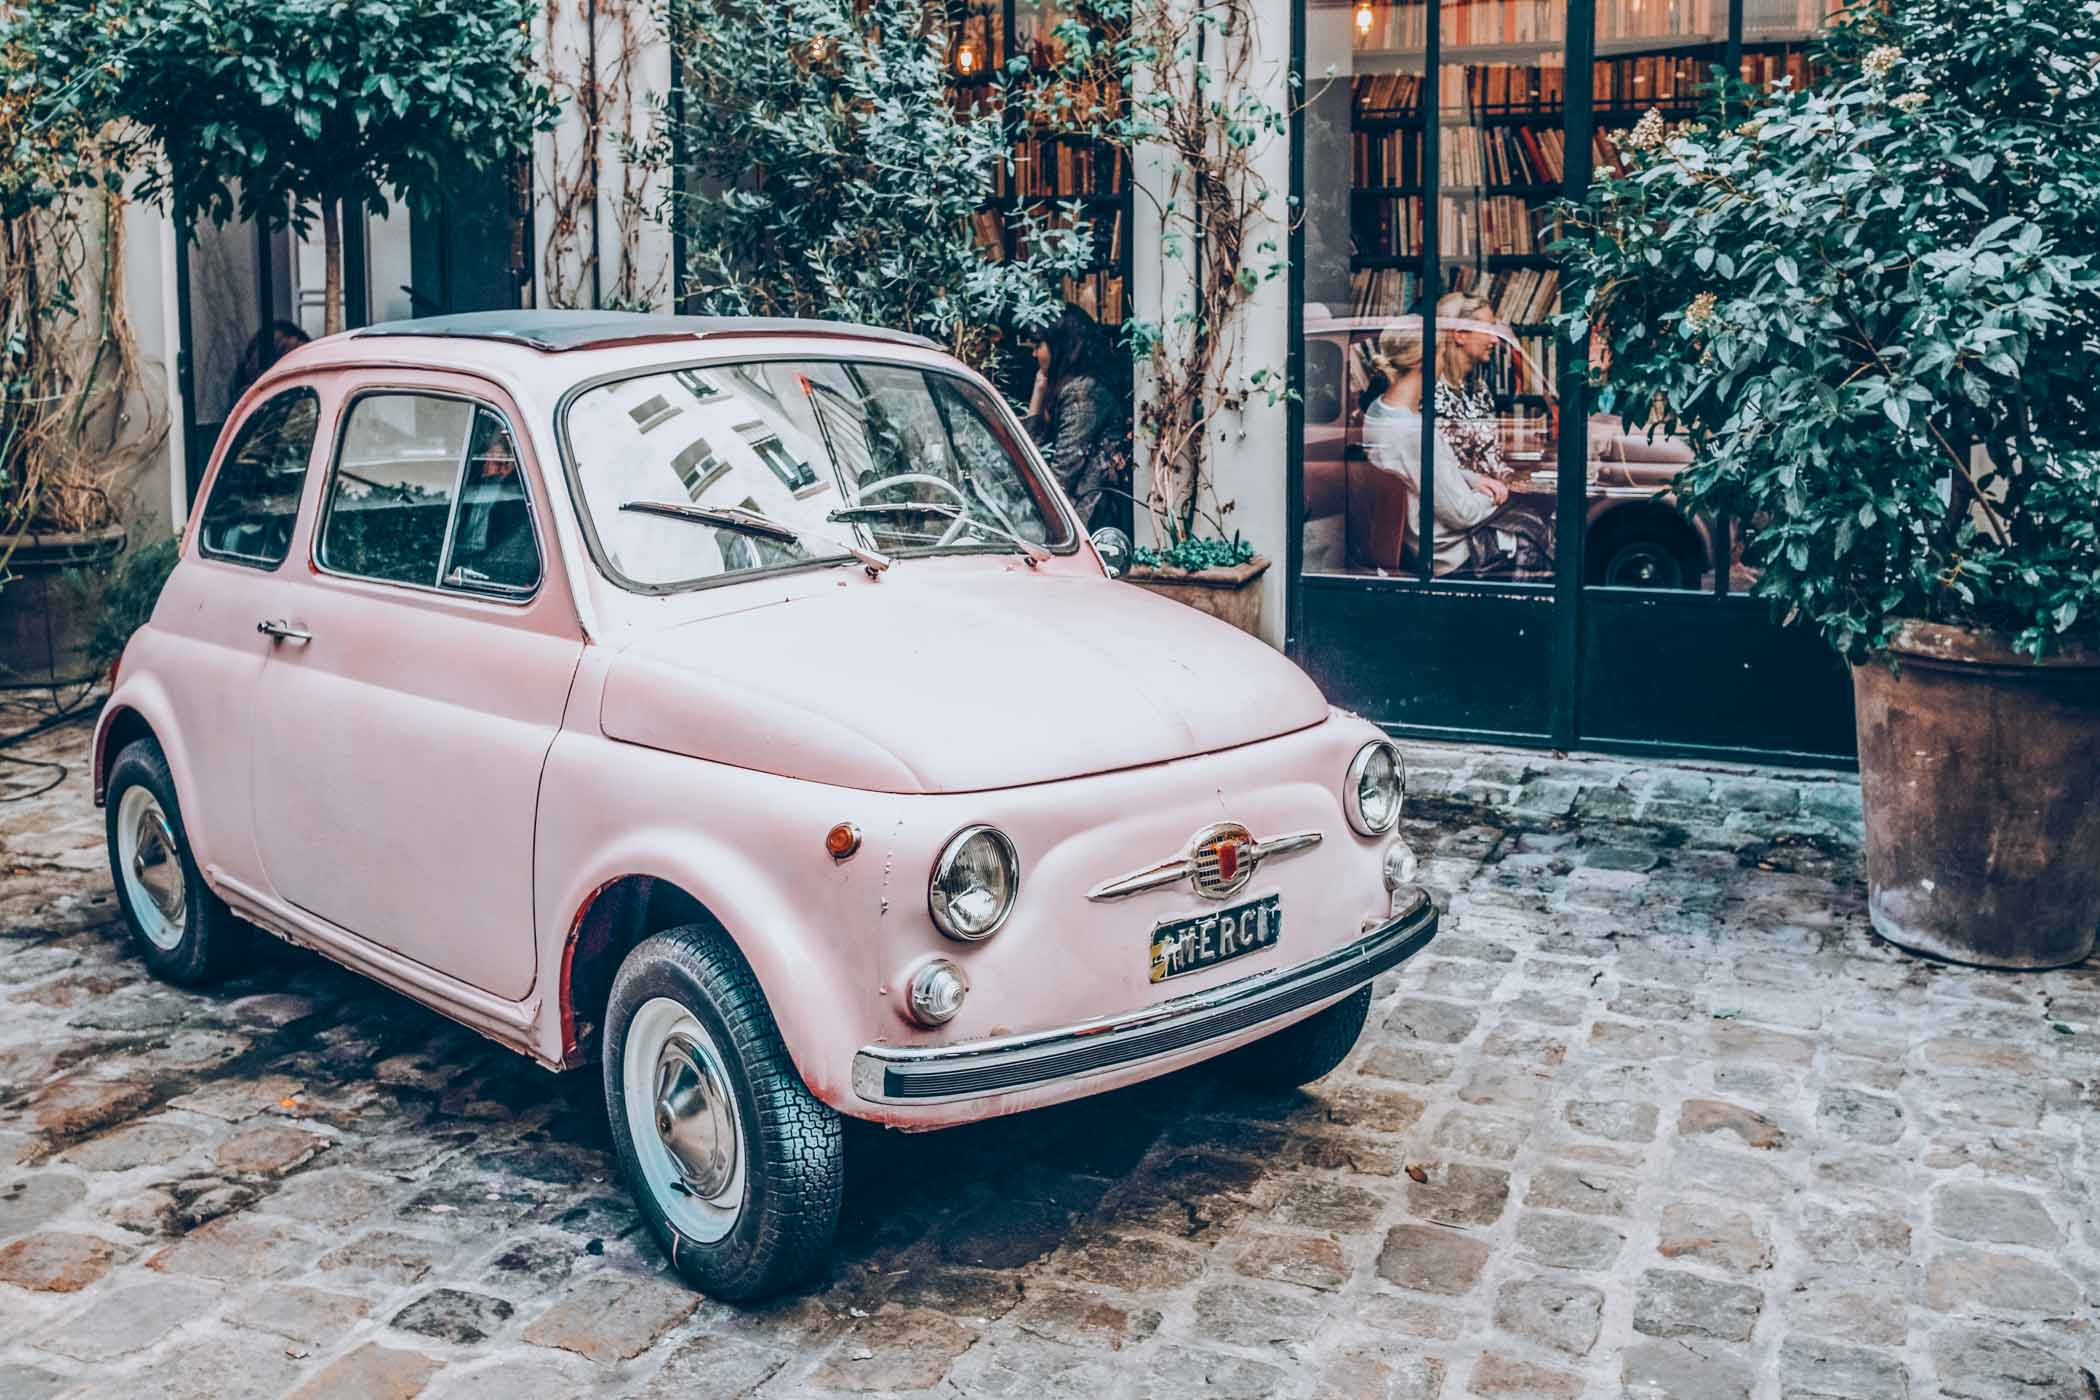 Paris is full of hidden gems. We've pulled together a list of our favorite secret spots in Paris to give you a different point of view.